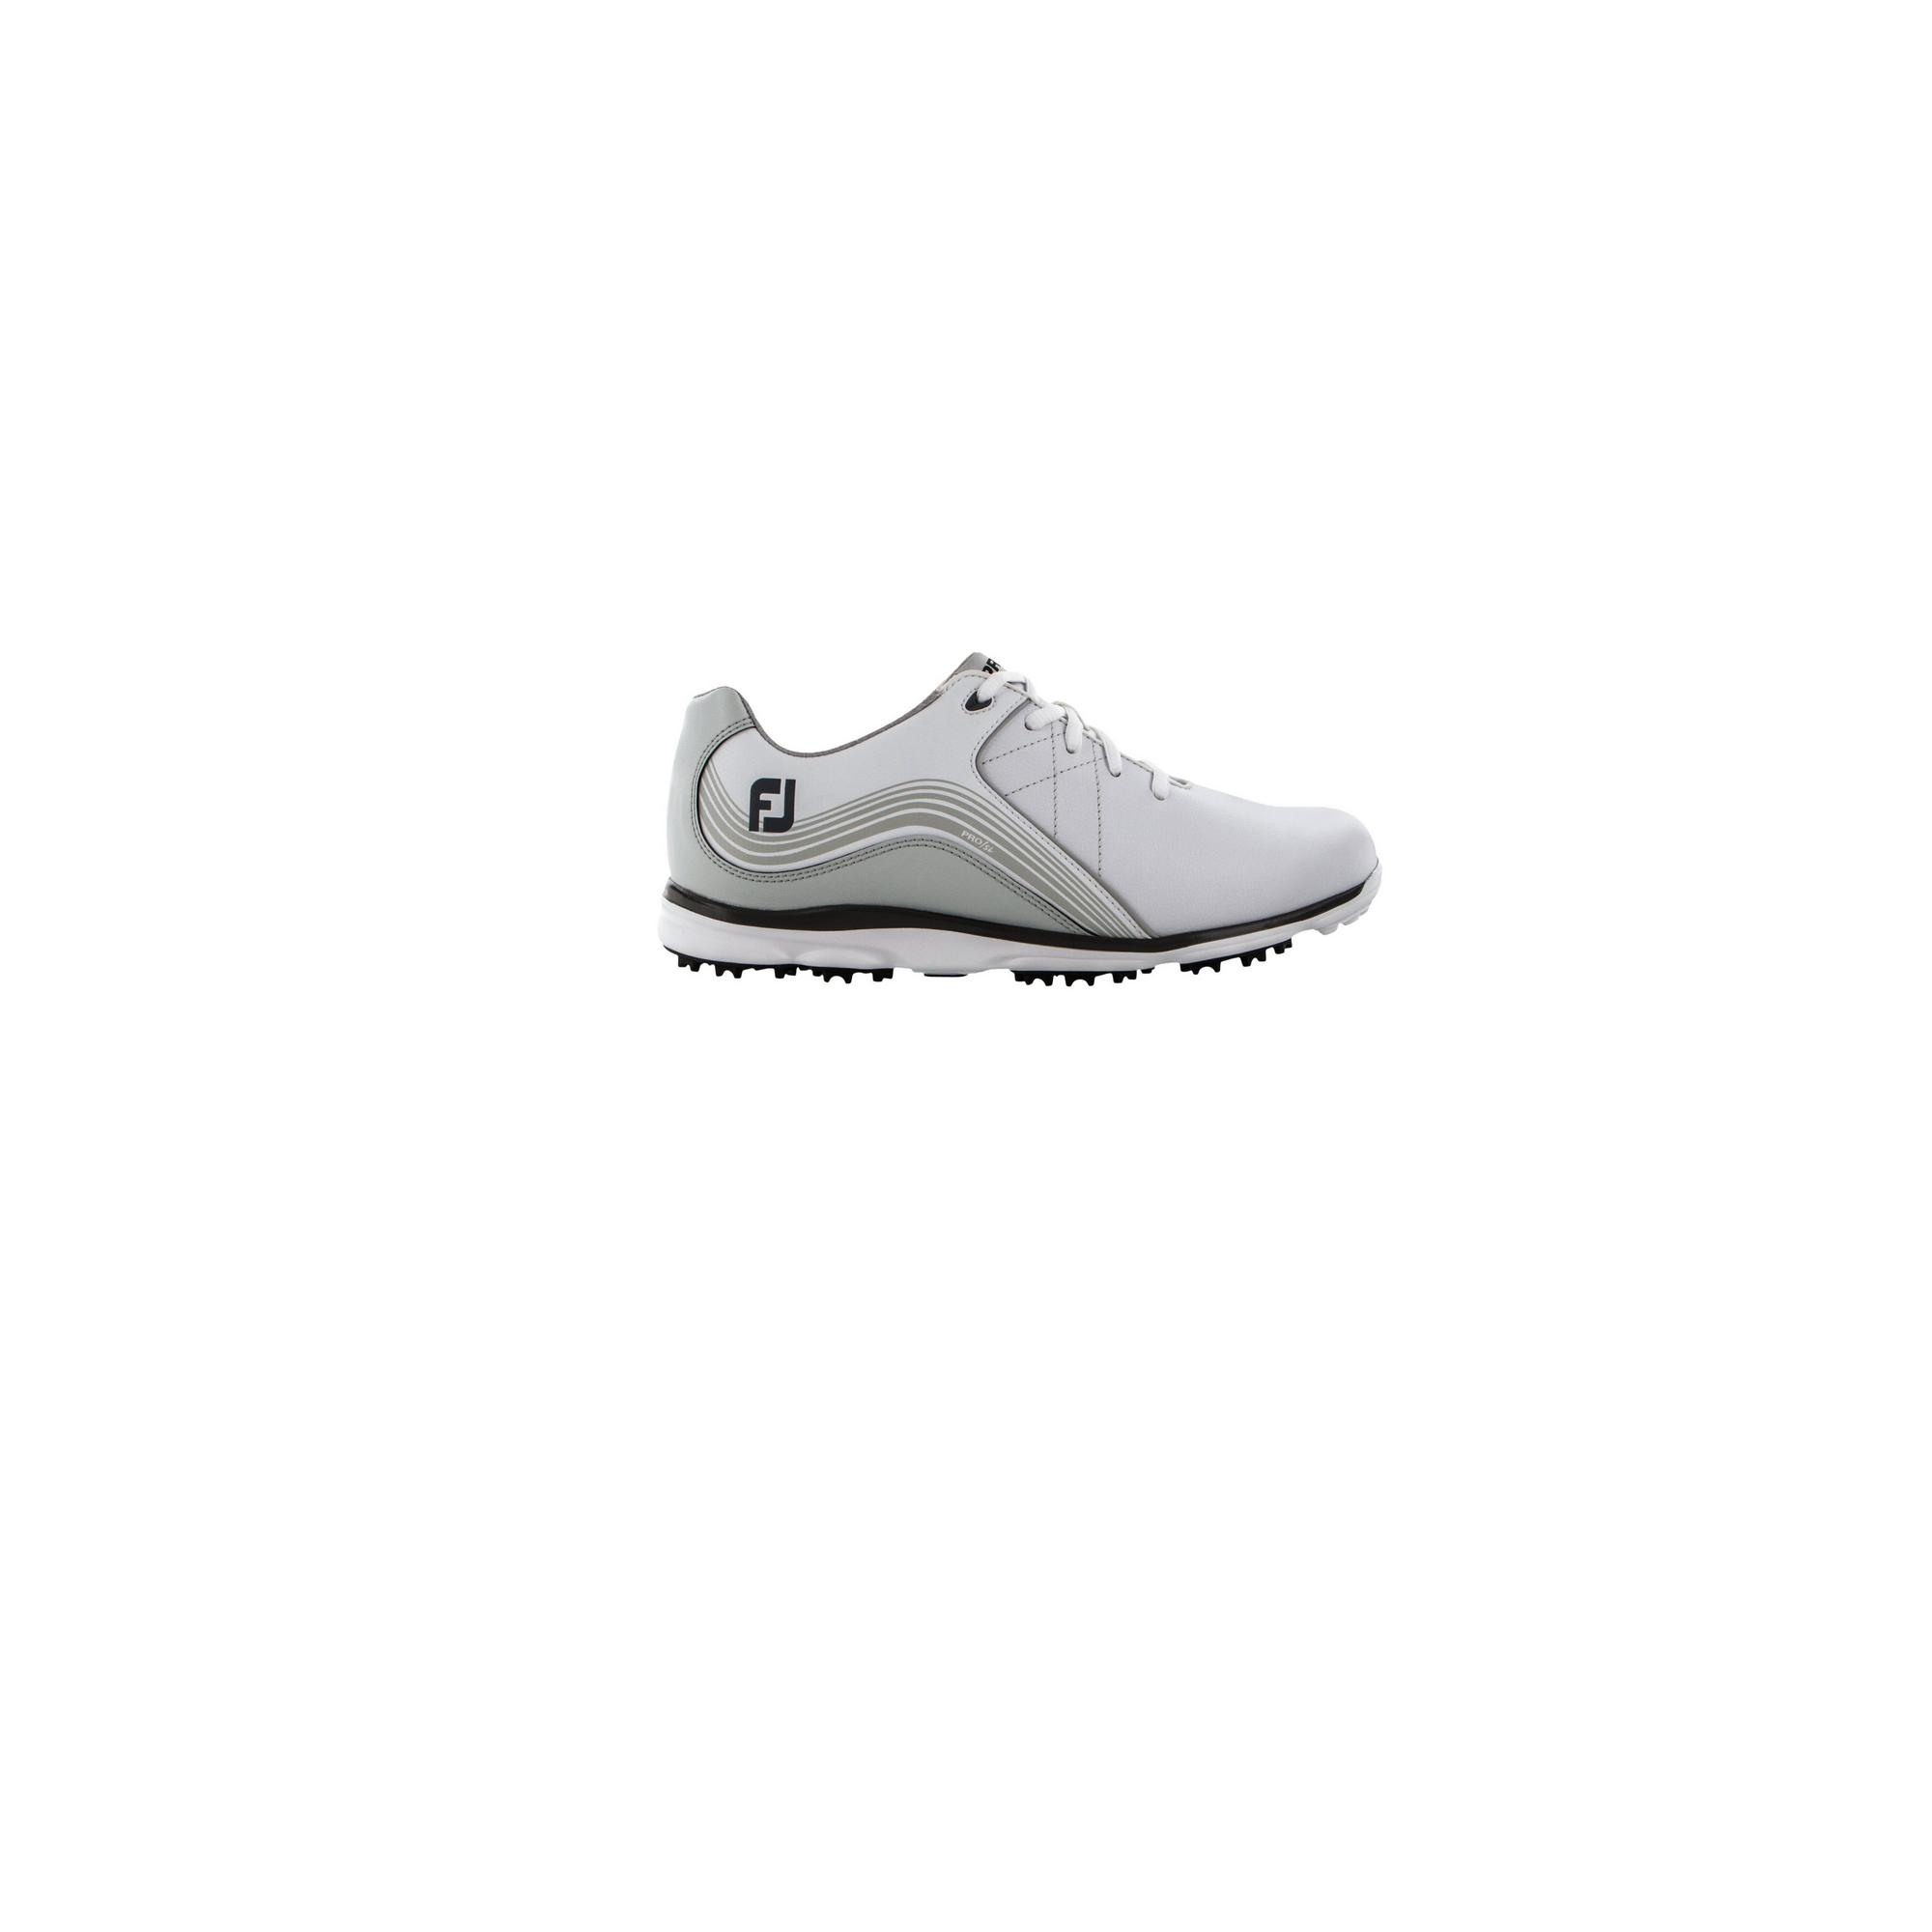 Women's Pro SL Spikeless Golf Shoe - WHITE/SILVER